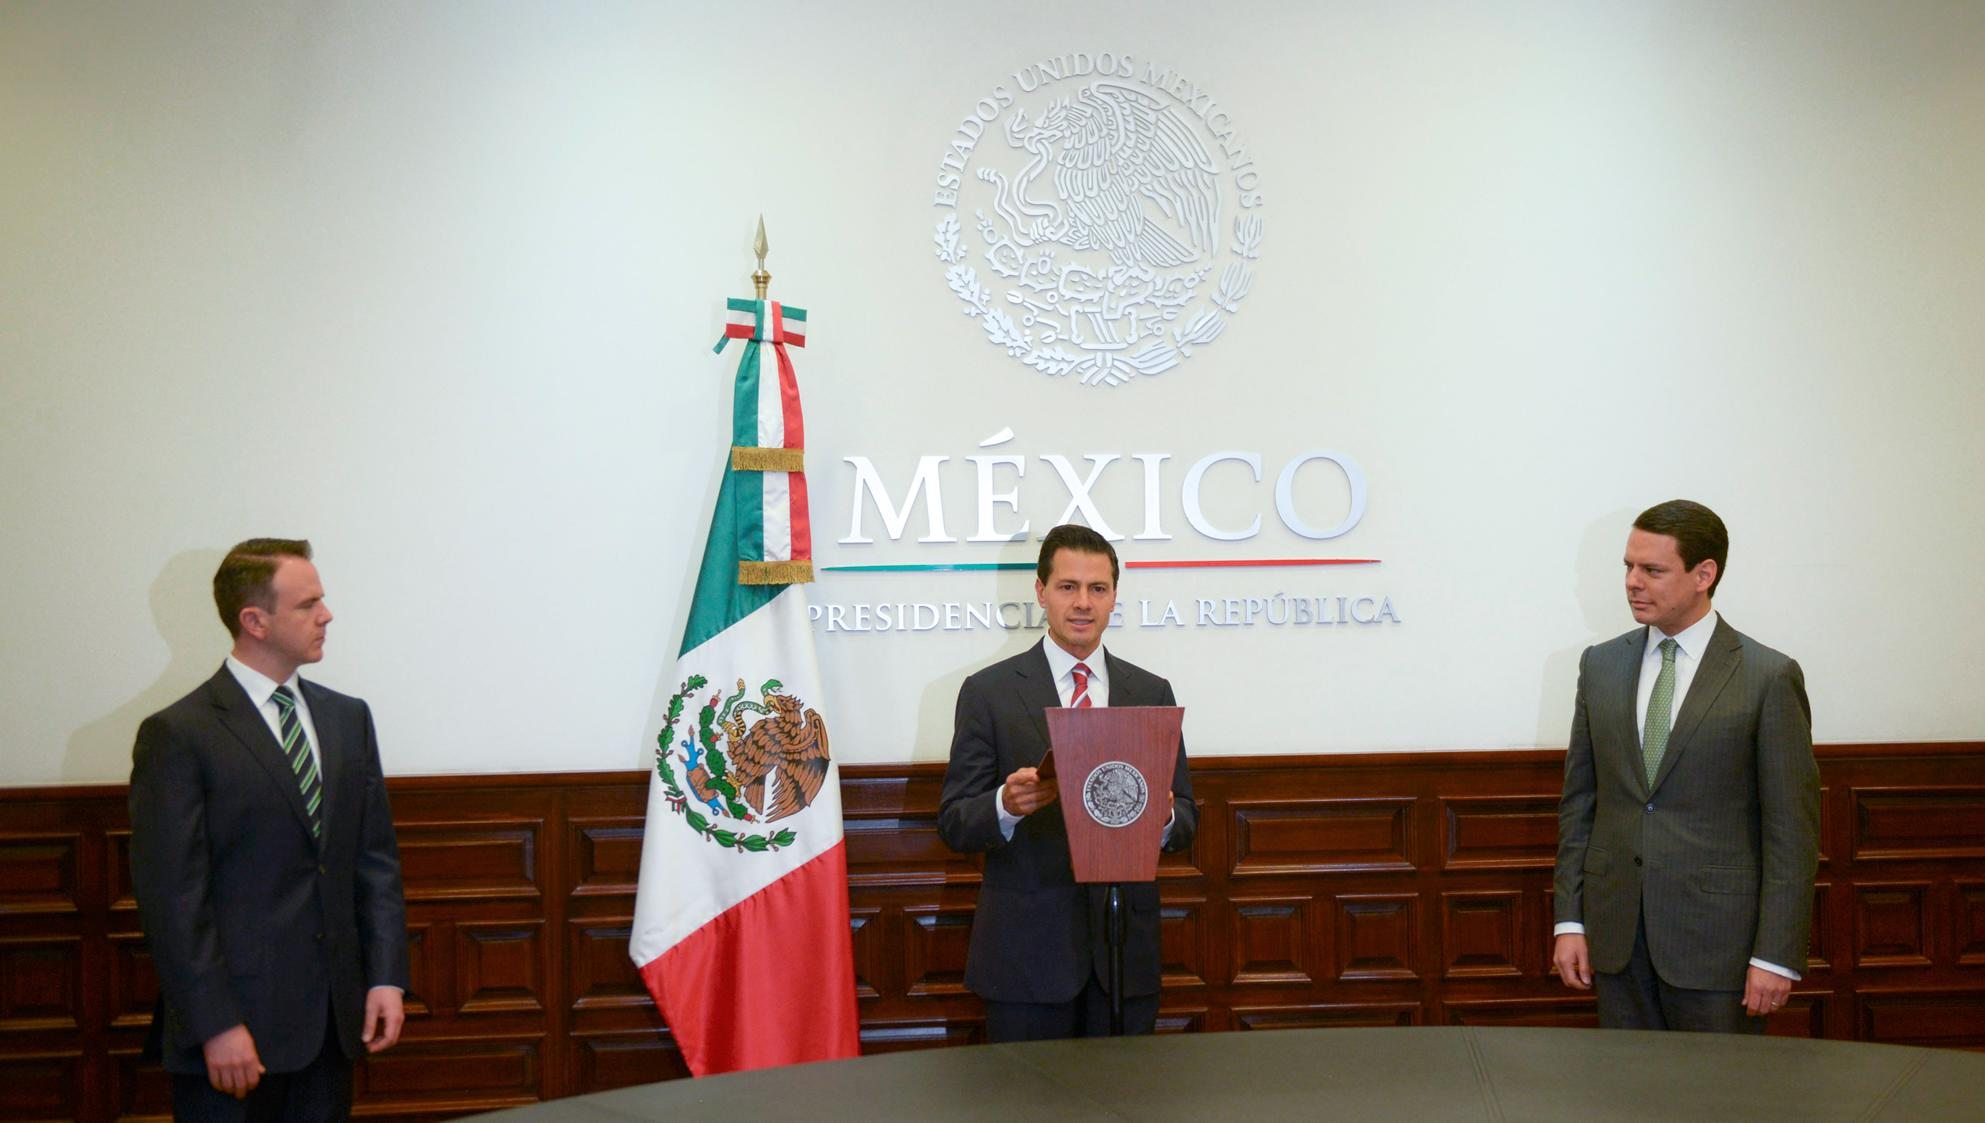 The president swears in Dr. Jaime Francisco Hernández Martínez as Director General of the Federal Electricity Commission.